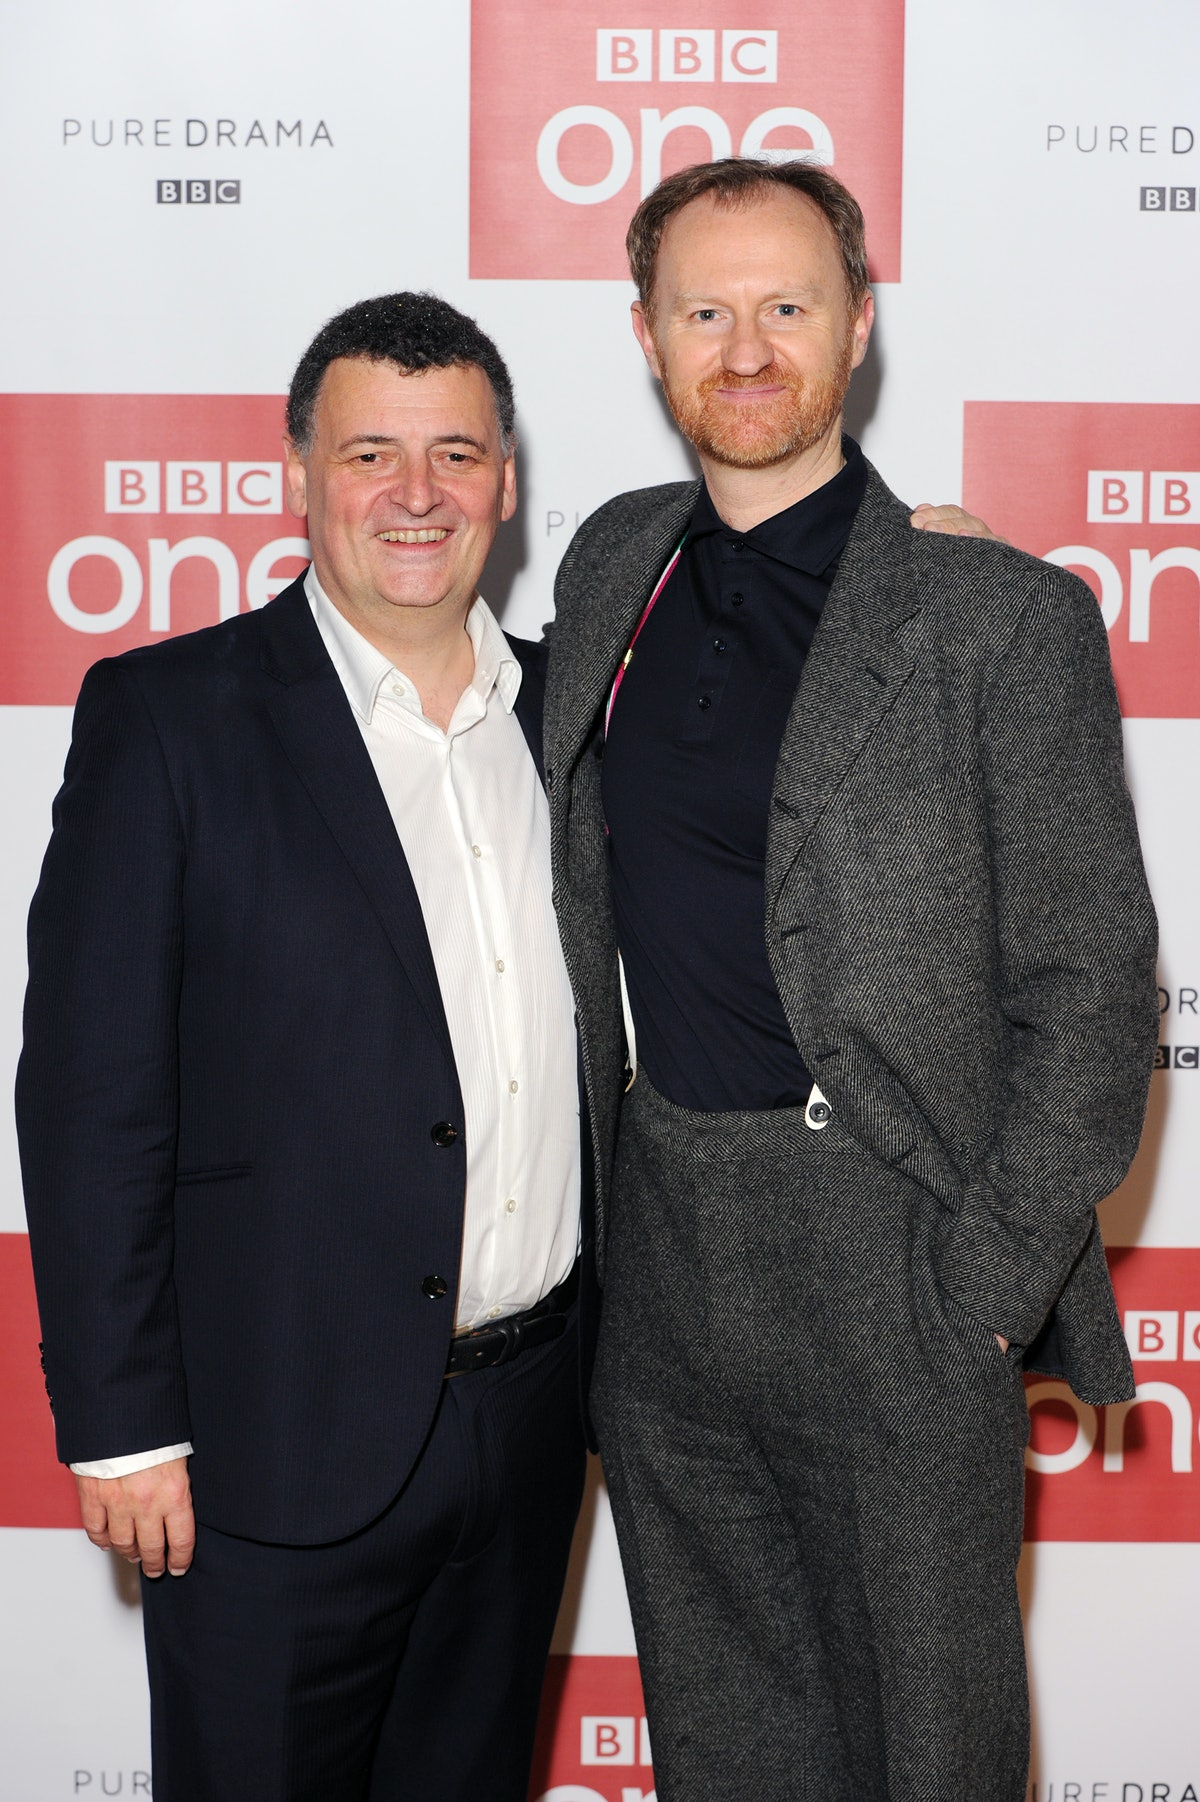 'Sherlock's Mark Gatiss & Steven Moffat Are Adapting 'Dracula' For The BBC